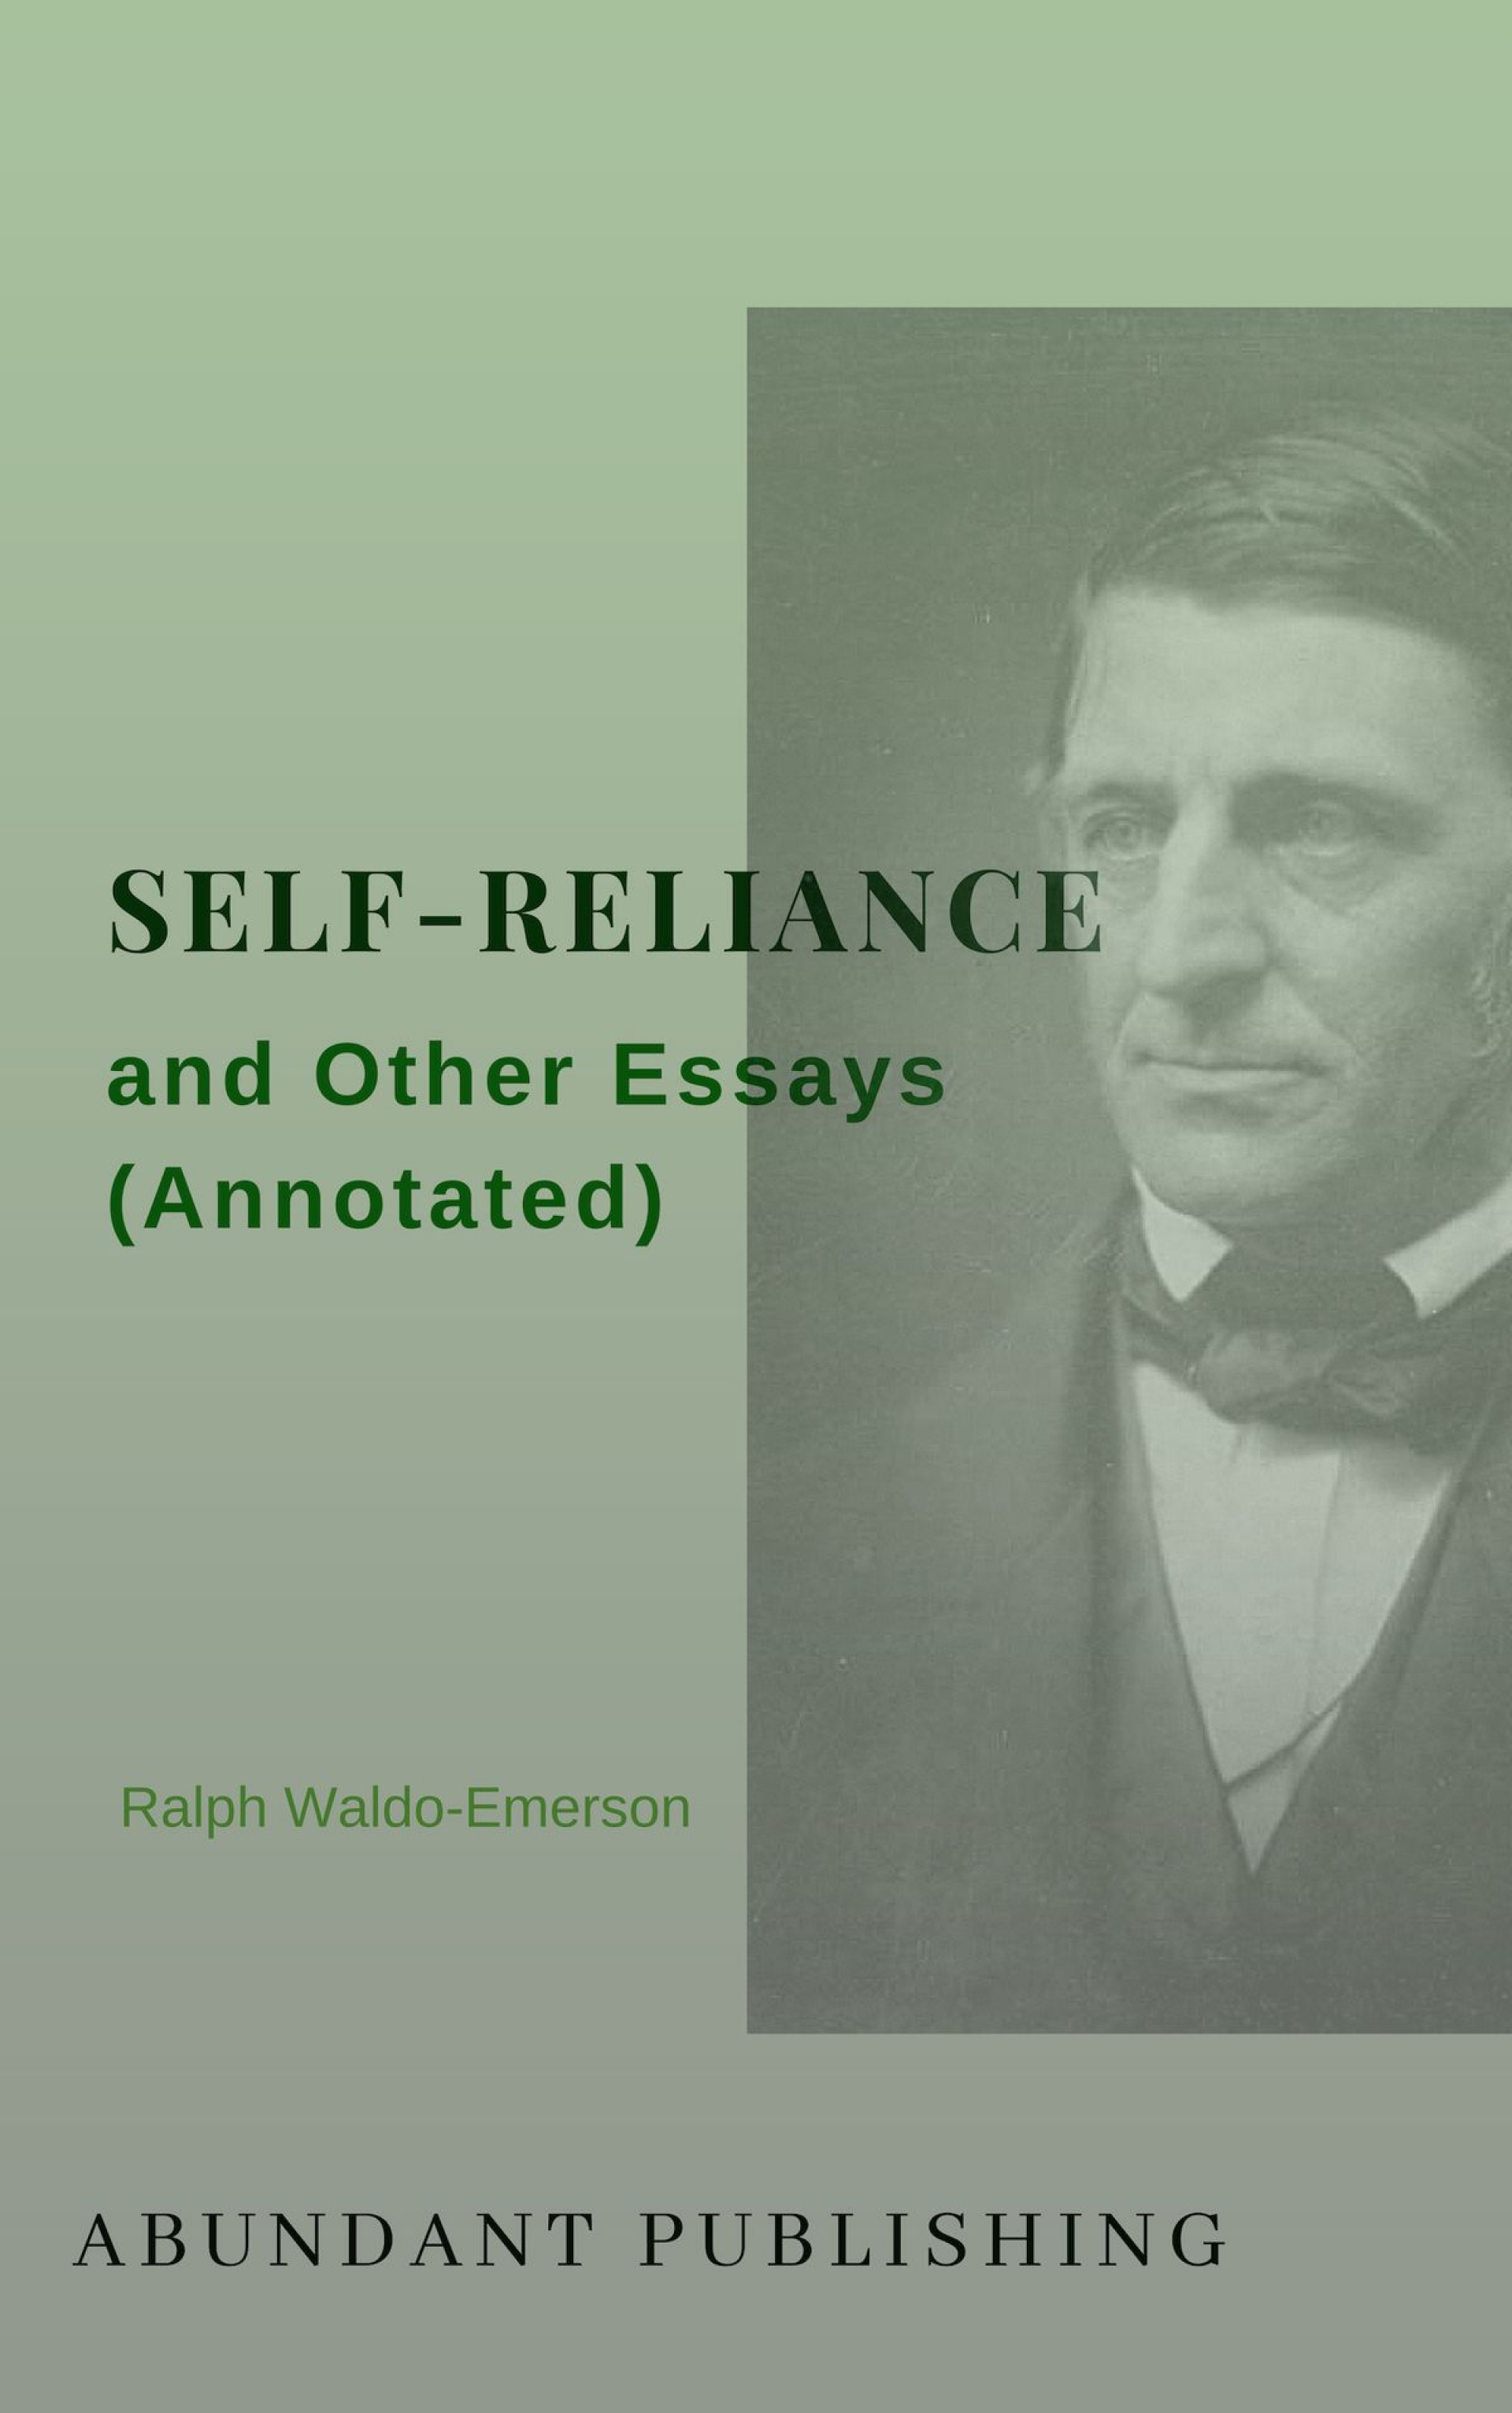 005 Self Reliance And Other Essays Annotated Essay Formidable Ralph Waldo Emerson Pdf Ekşi 1920